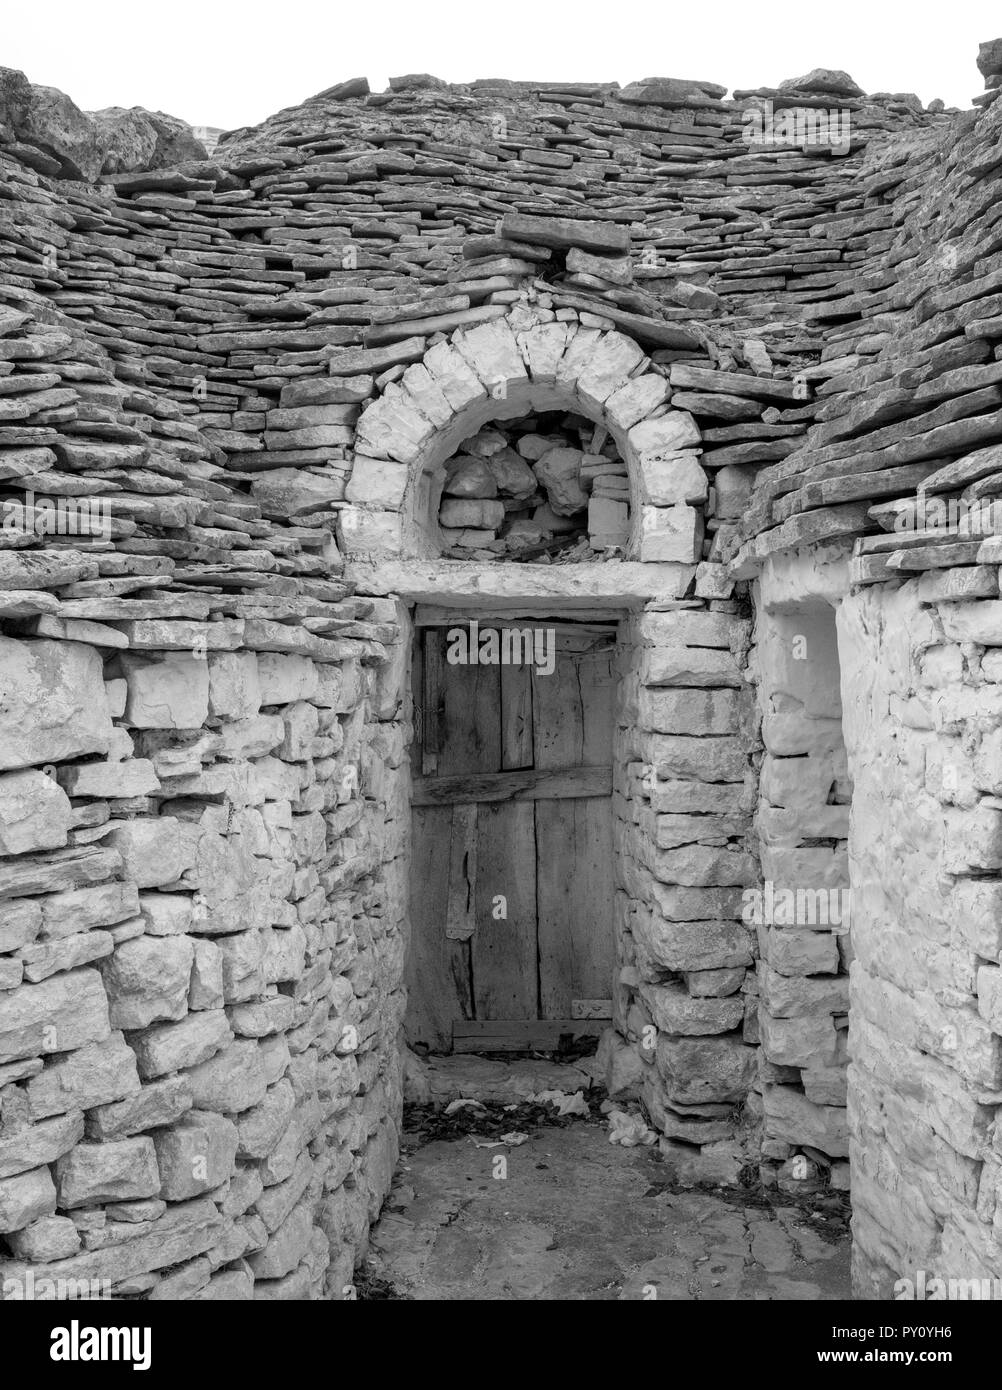 Alberobello, Italy. Conical roofed trulli house in the town of Alberobello in Puglia, Southern Italy. - Stock Image